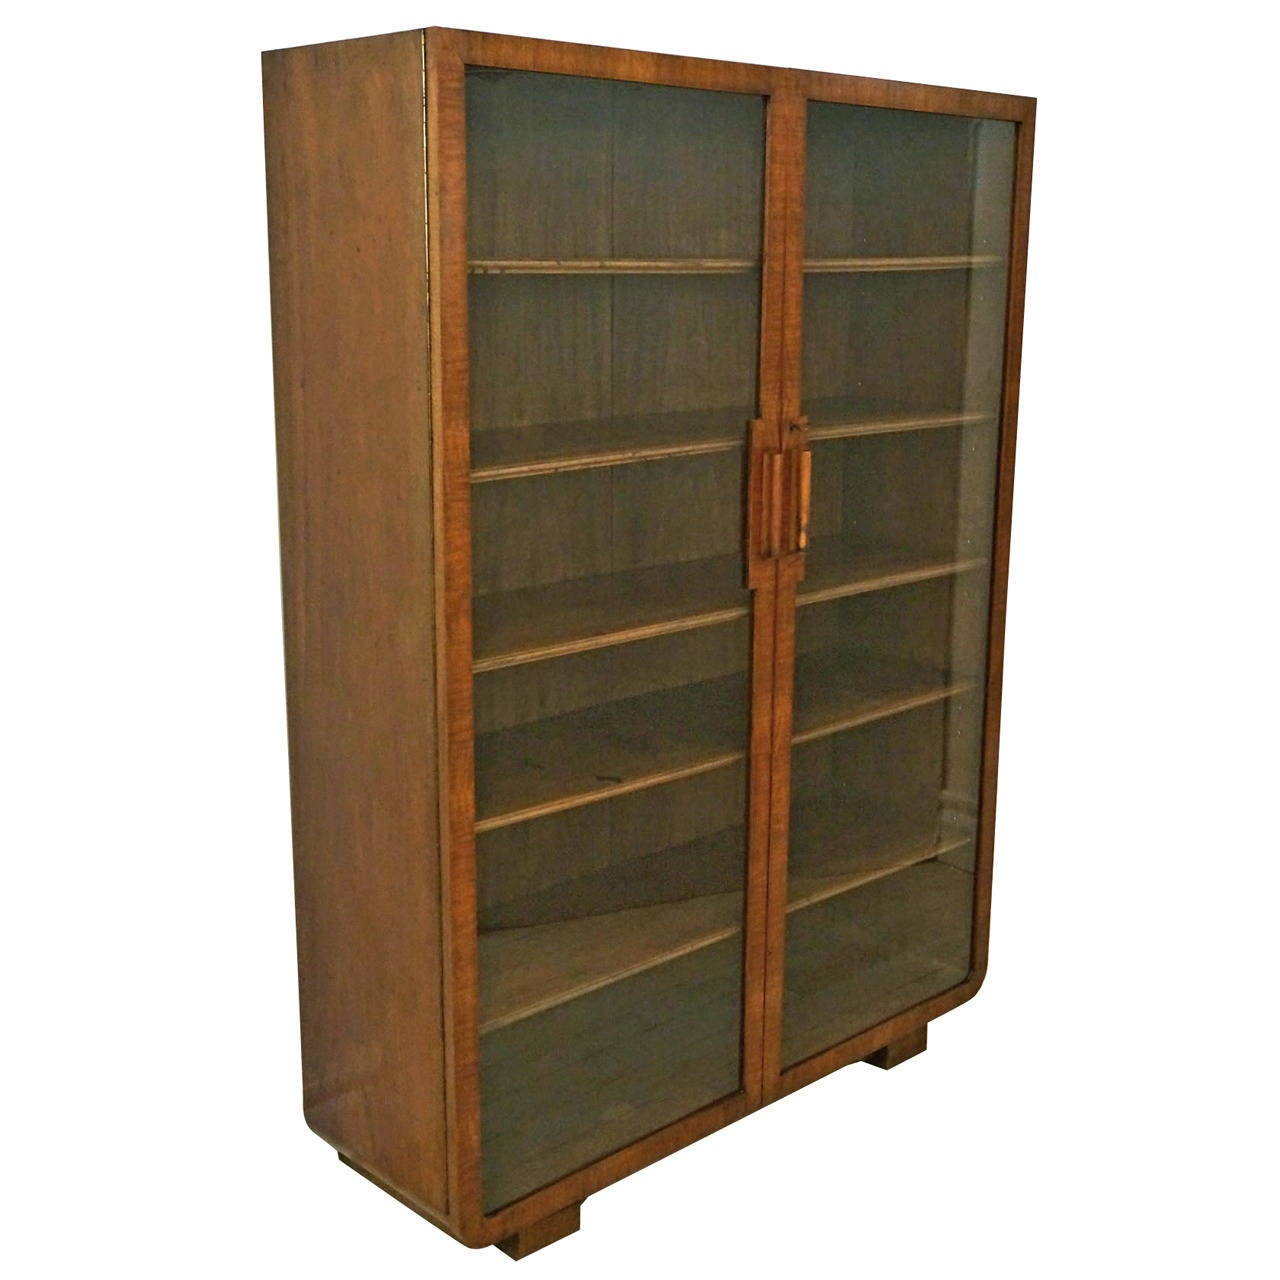 Wonderful image of Art Deco Walnut Cabinet with Glass Doors and Wood Shelves at 1stdibs with #956536 color and 1280x1280 pixels